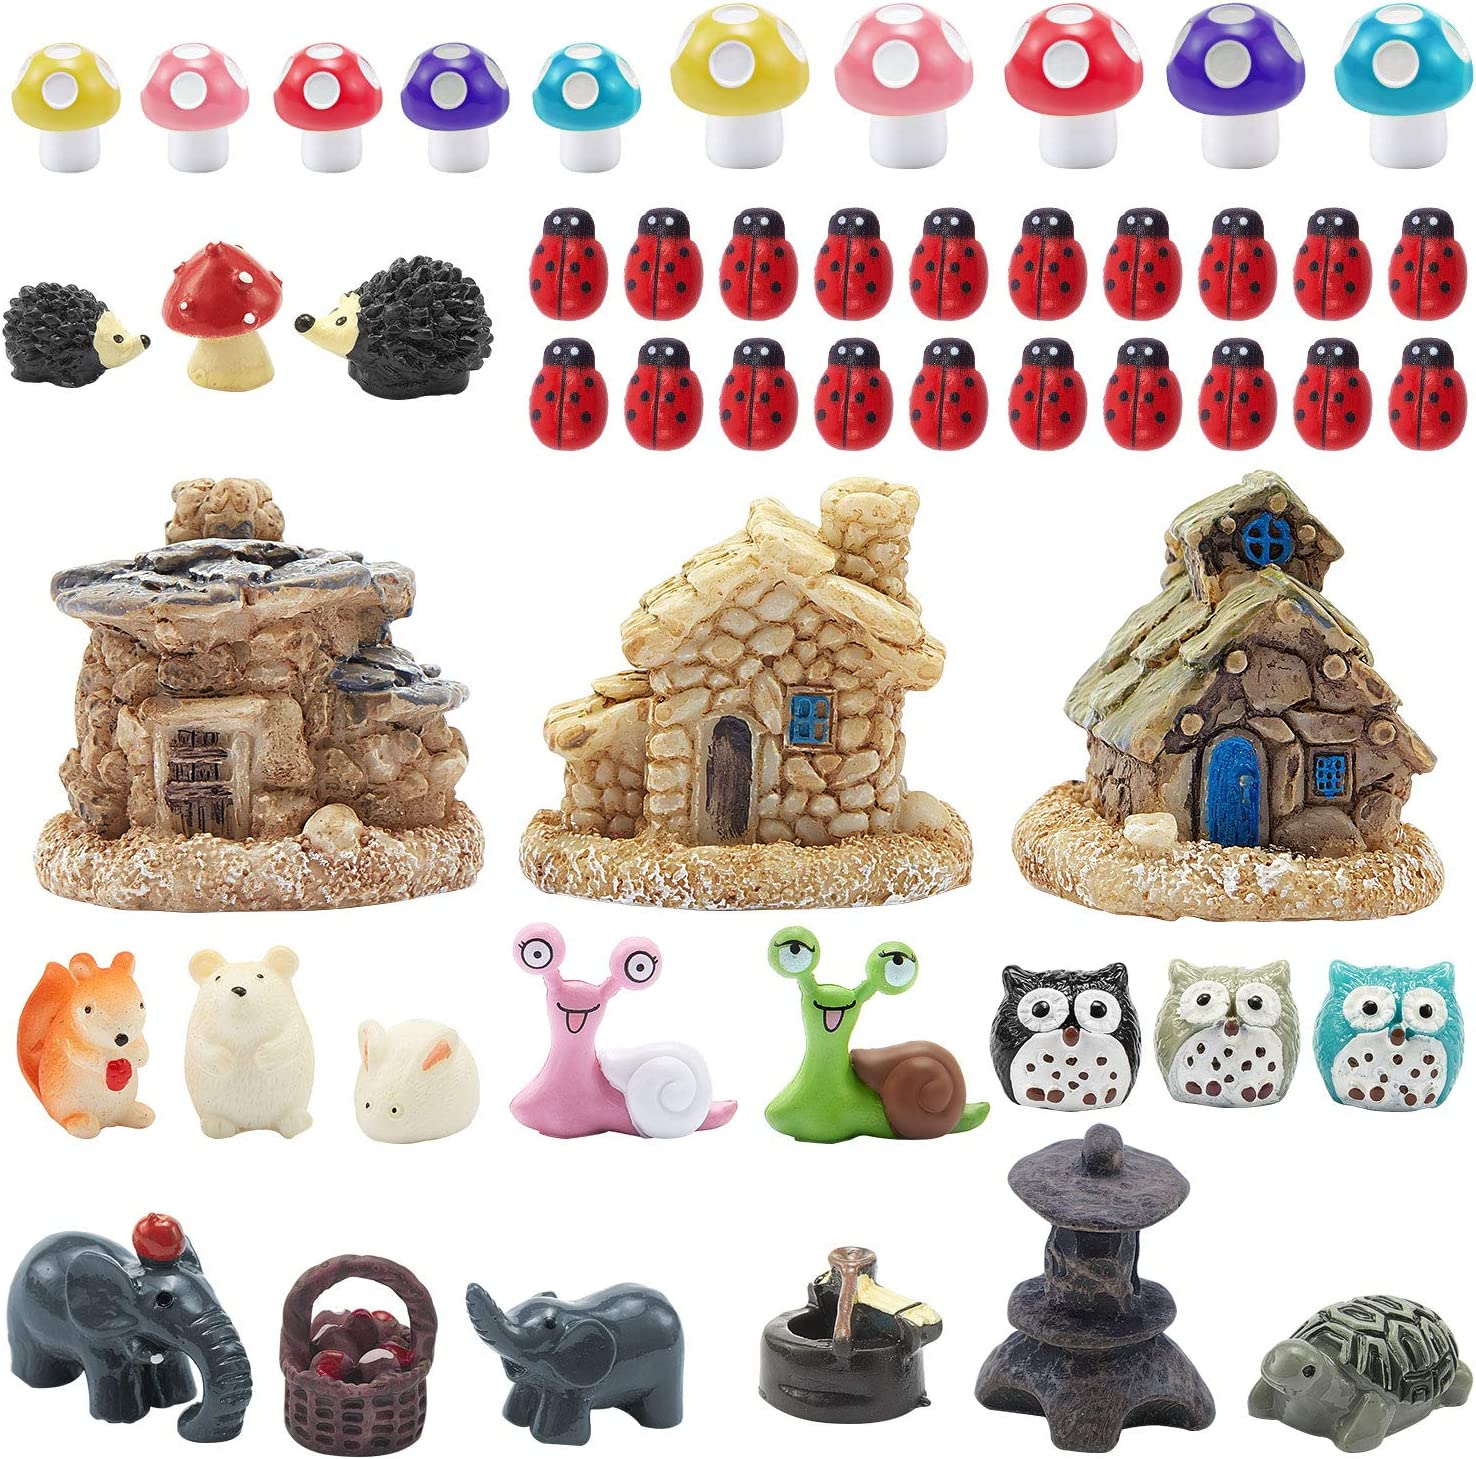 44 Pieces Miniature Fairy Garden Accessories, Including Miniature Fairy Garden House, DIY Dollhouse Ornaments Kits Fairy Garden Decor, Fairy Garden Figurines Fairy Garden Animals for House Decor